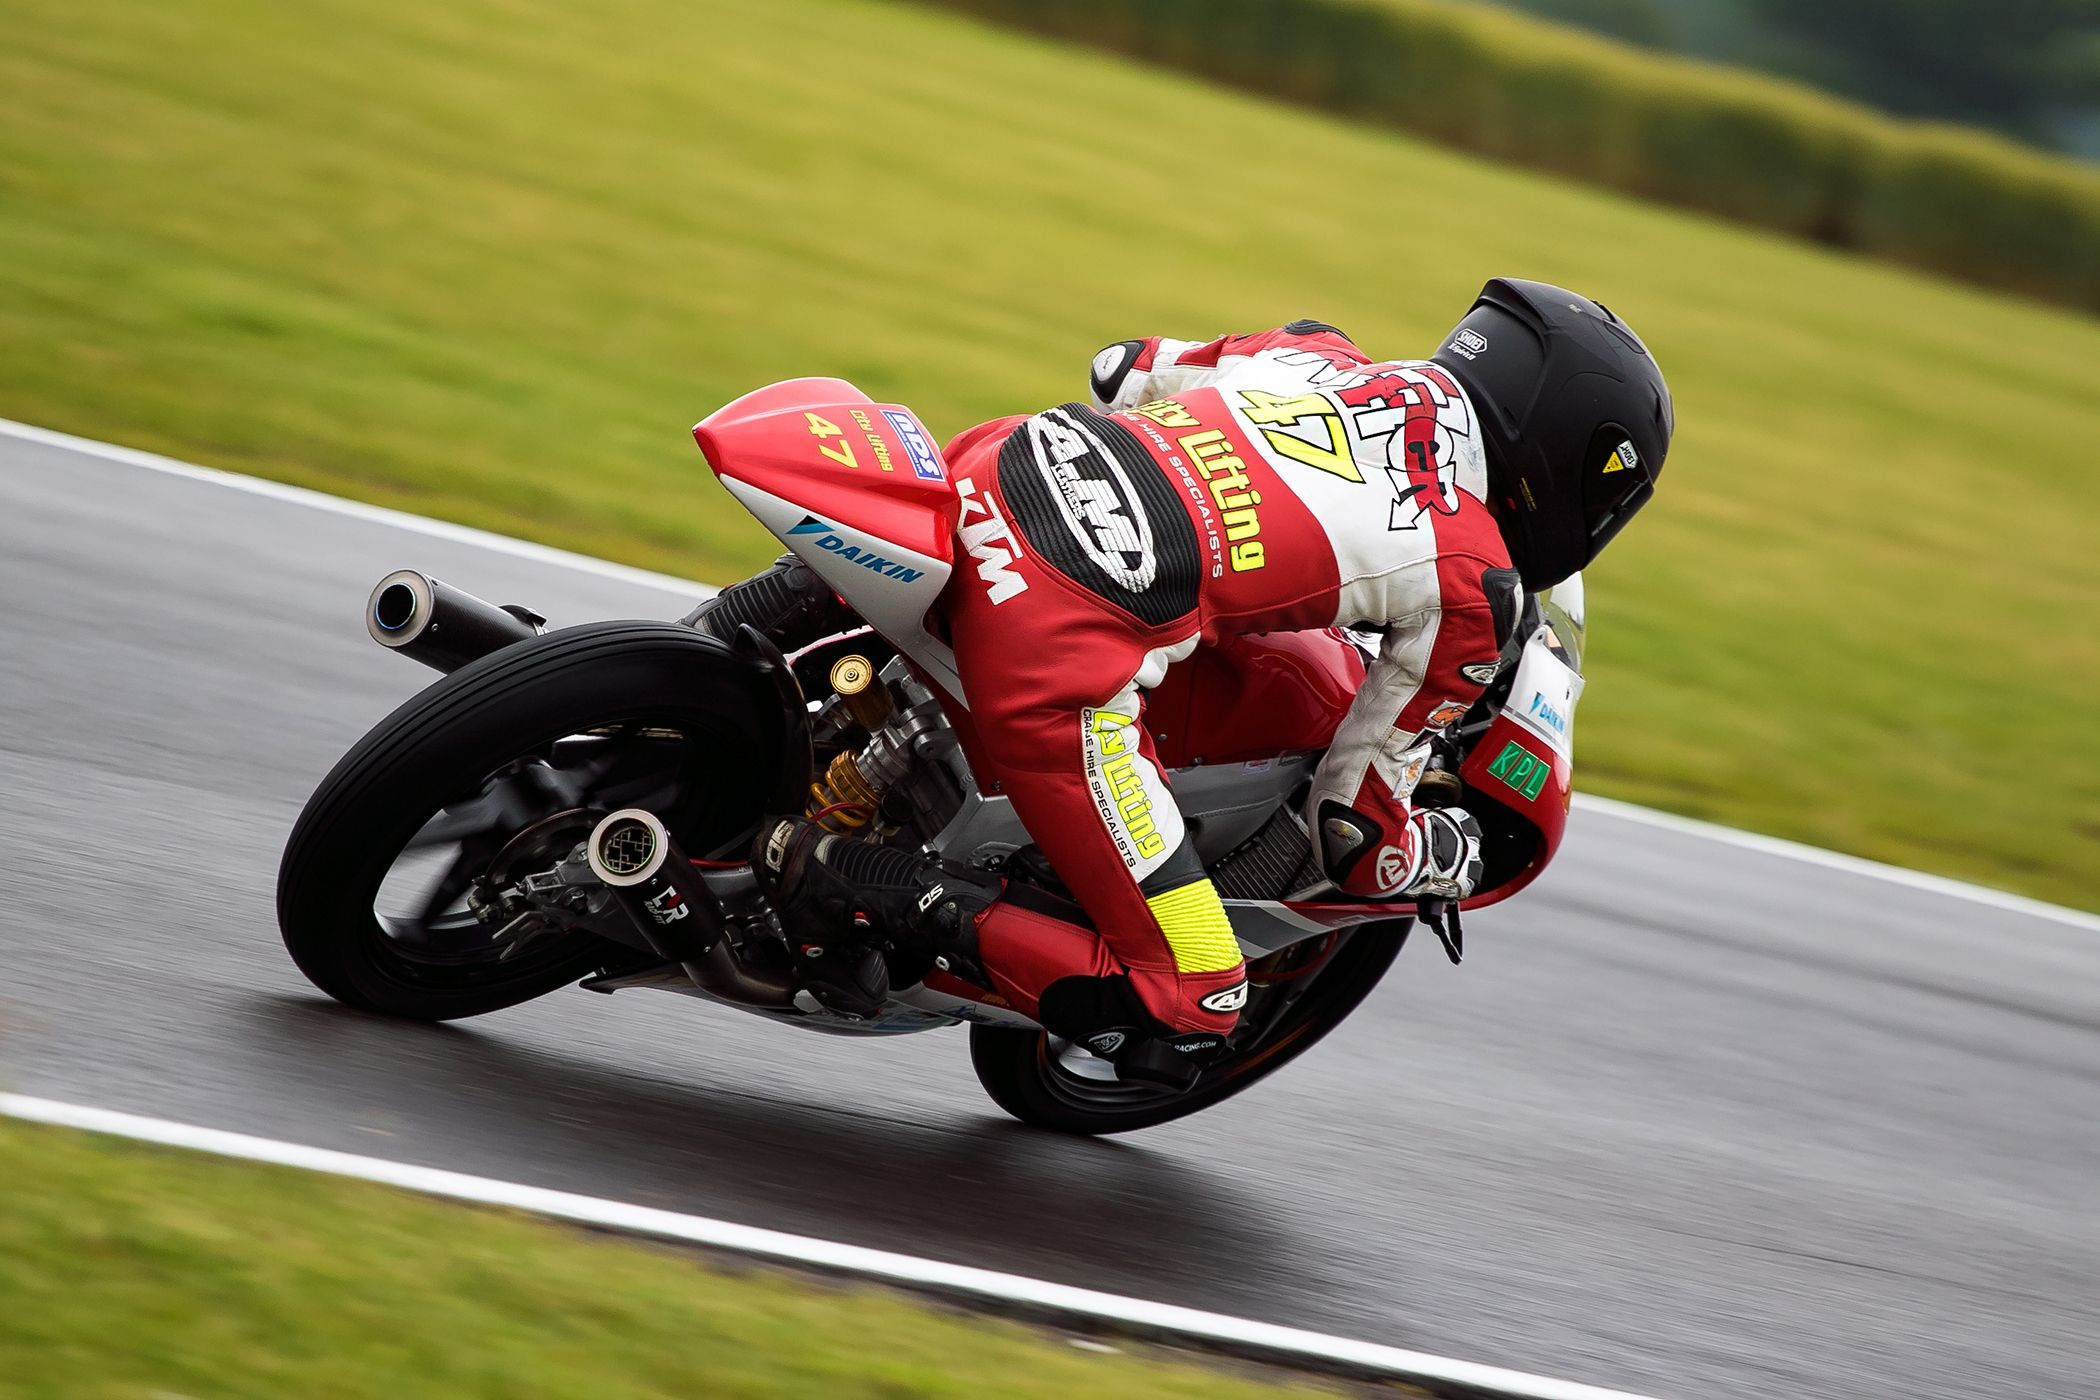 Jake Archer at Snetterton - Picture by Johnny Wills